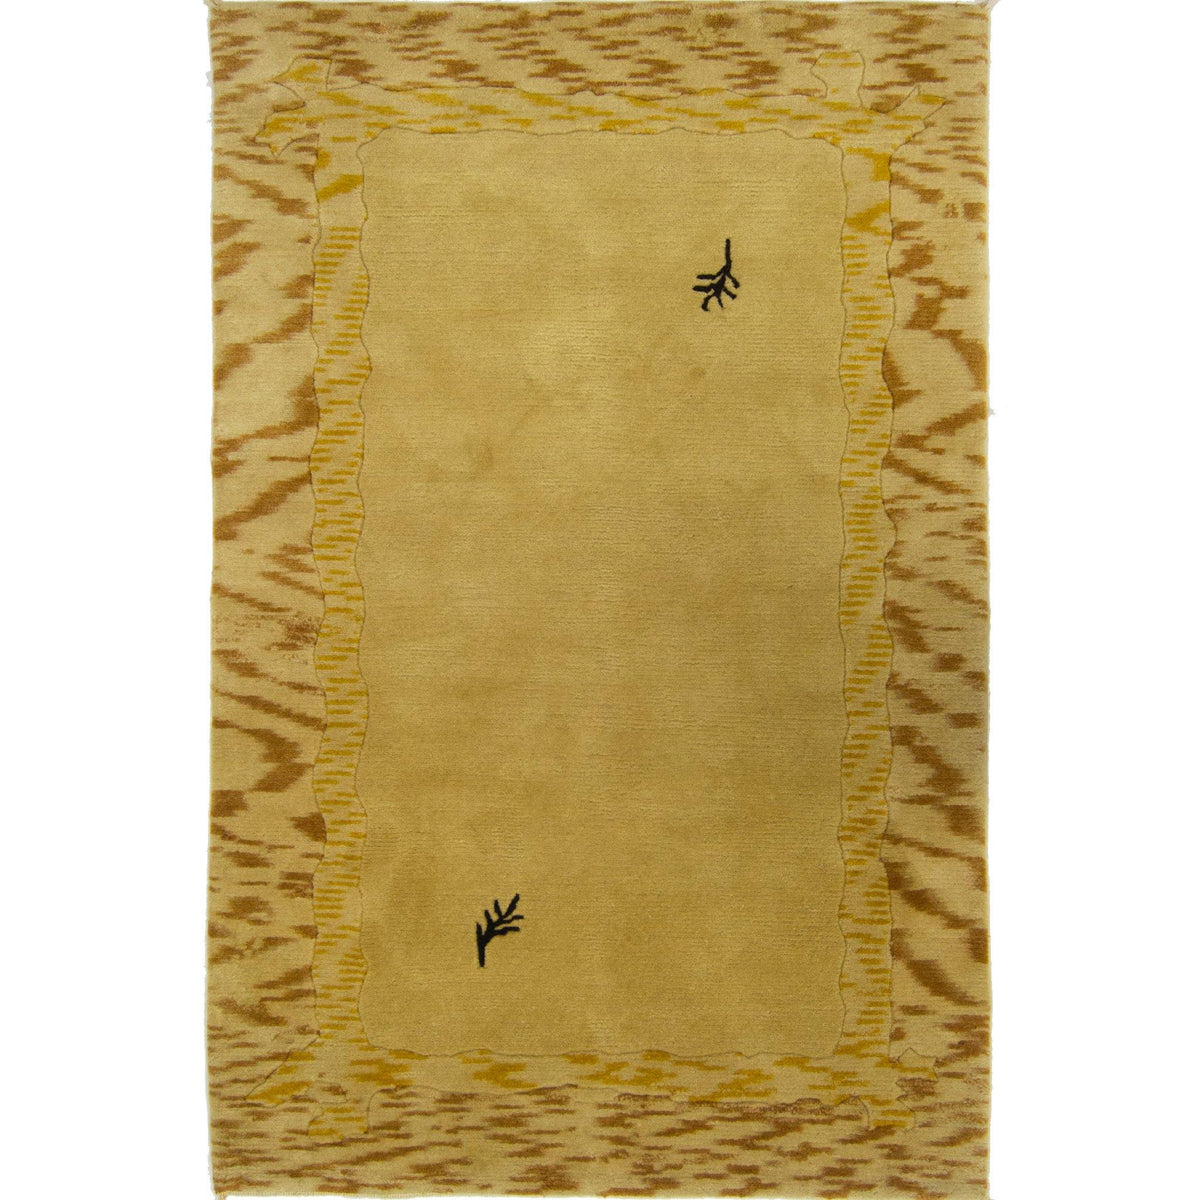 Modern Hand-knotted Wool Tibetan Rug 120cm x 179cm Persian-Rug | House-of-Haghi | NewMarket | Auckland | NZ | Handmade Persian Rugs | Hand Knotted Persian Rugs